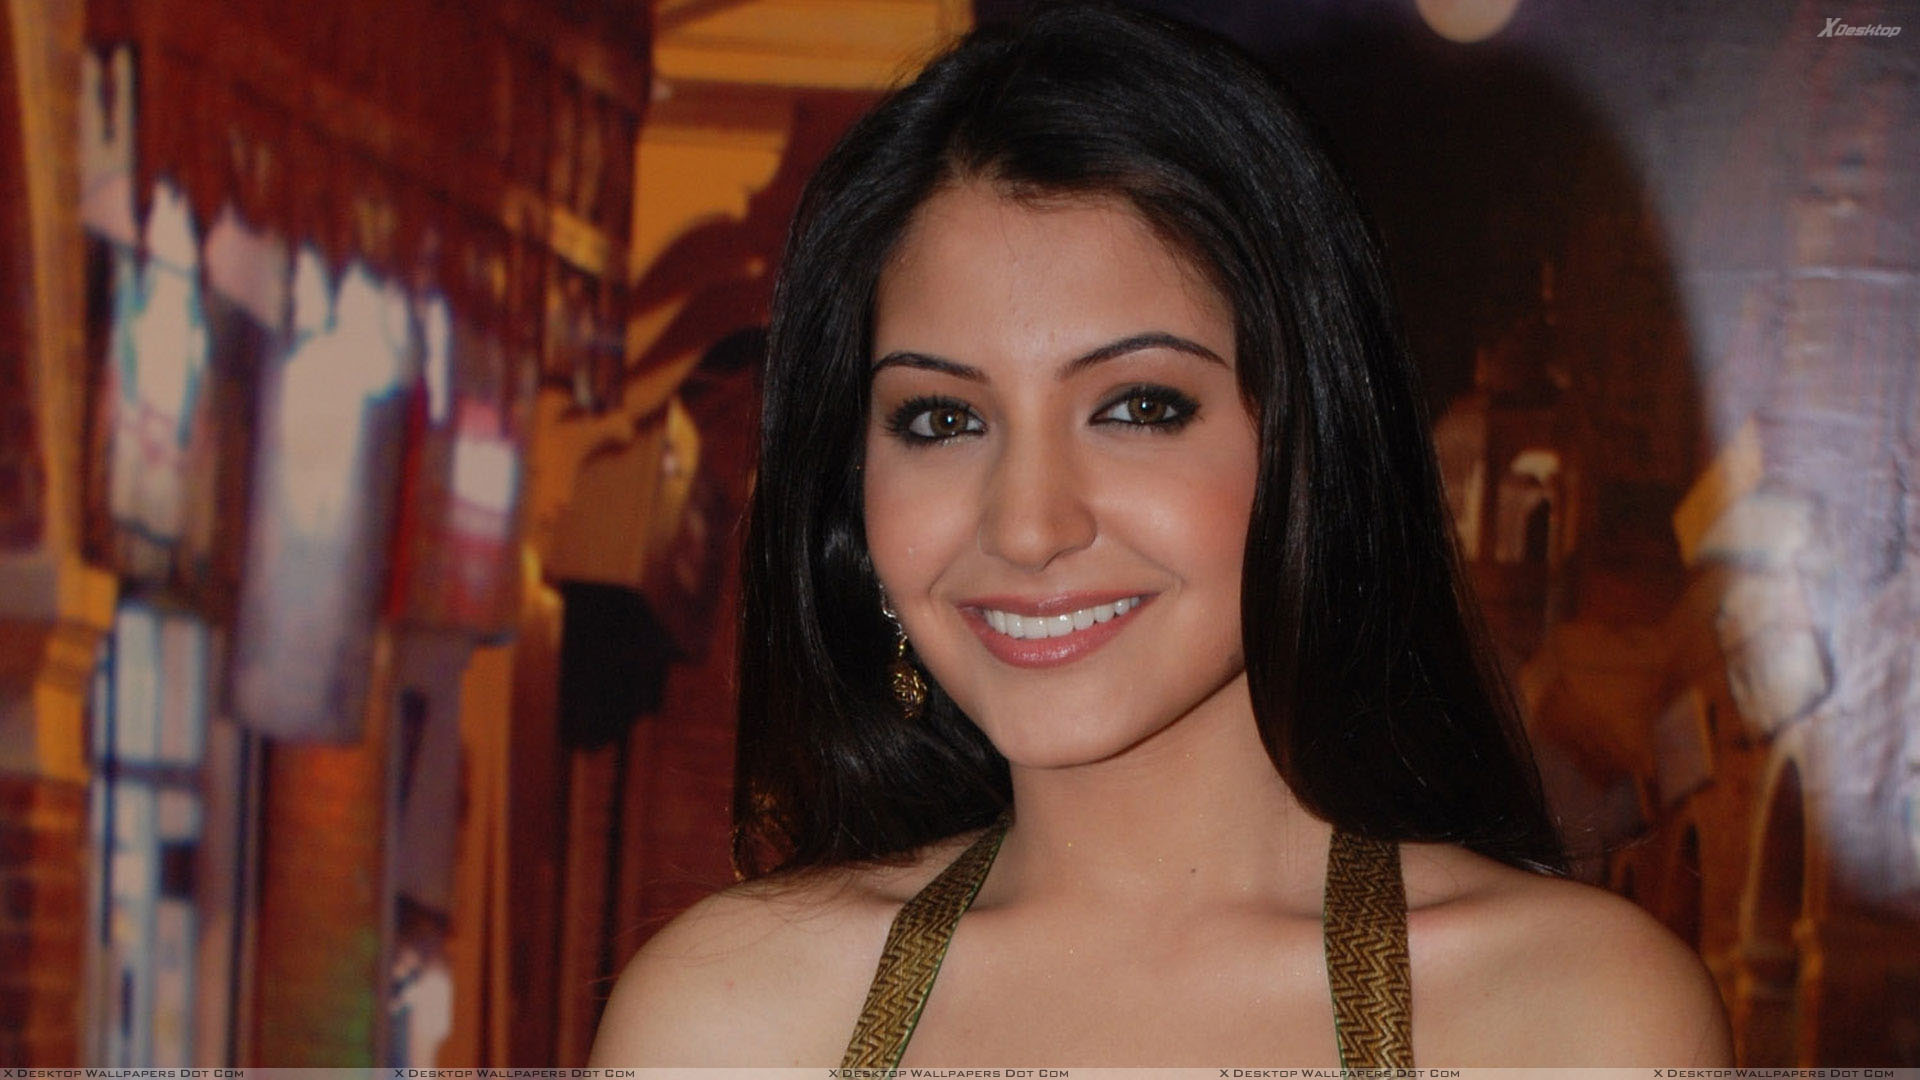 anushka sharma wallpapers, photos & images in hd